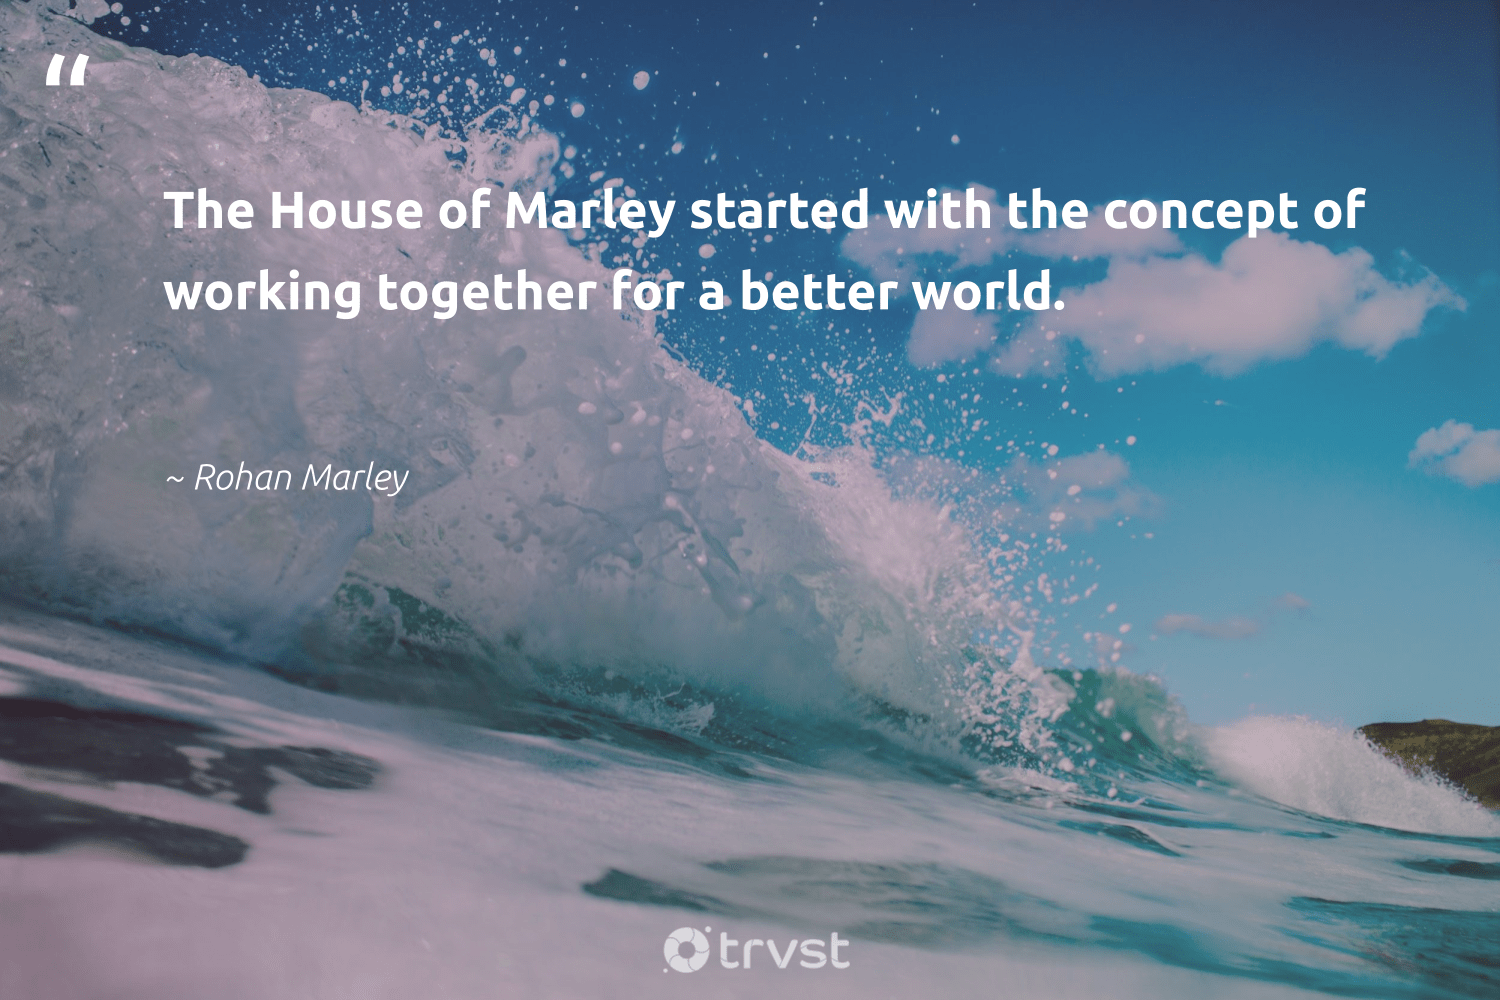 """The House of Marley started with the concept of working together for a better world.""  - Rohan Marley #trvst #quotes #workingtogether #nevergiveup #planetearthfirst #begreat #dogood #futureofwork #beinspired #softskills #changetheworld #dosomething"